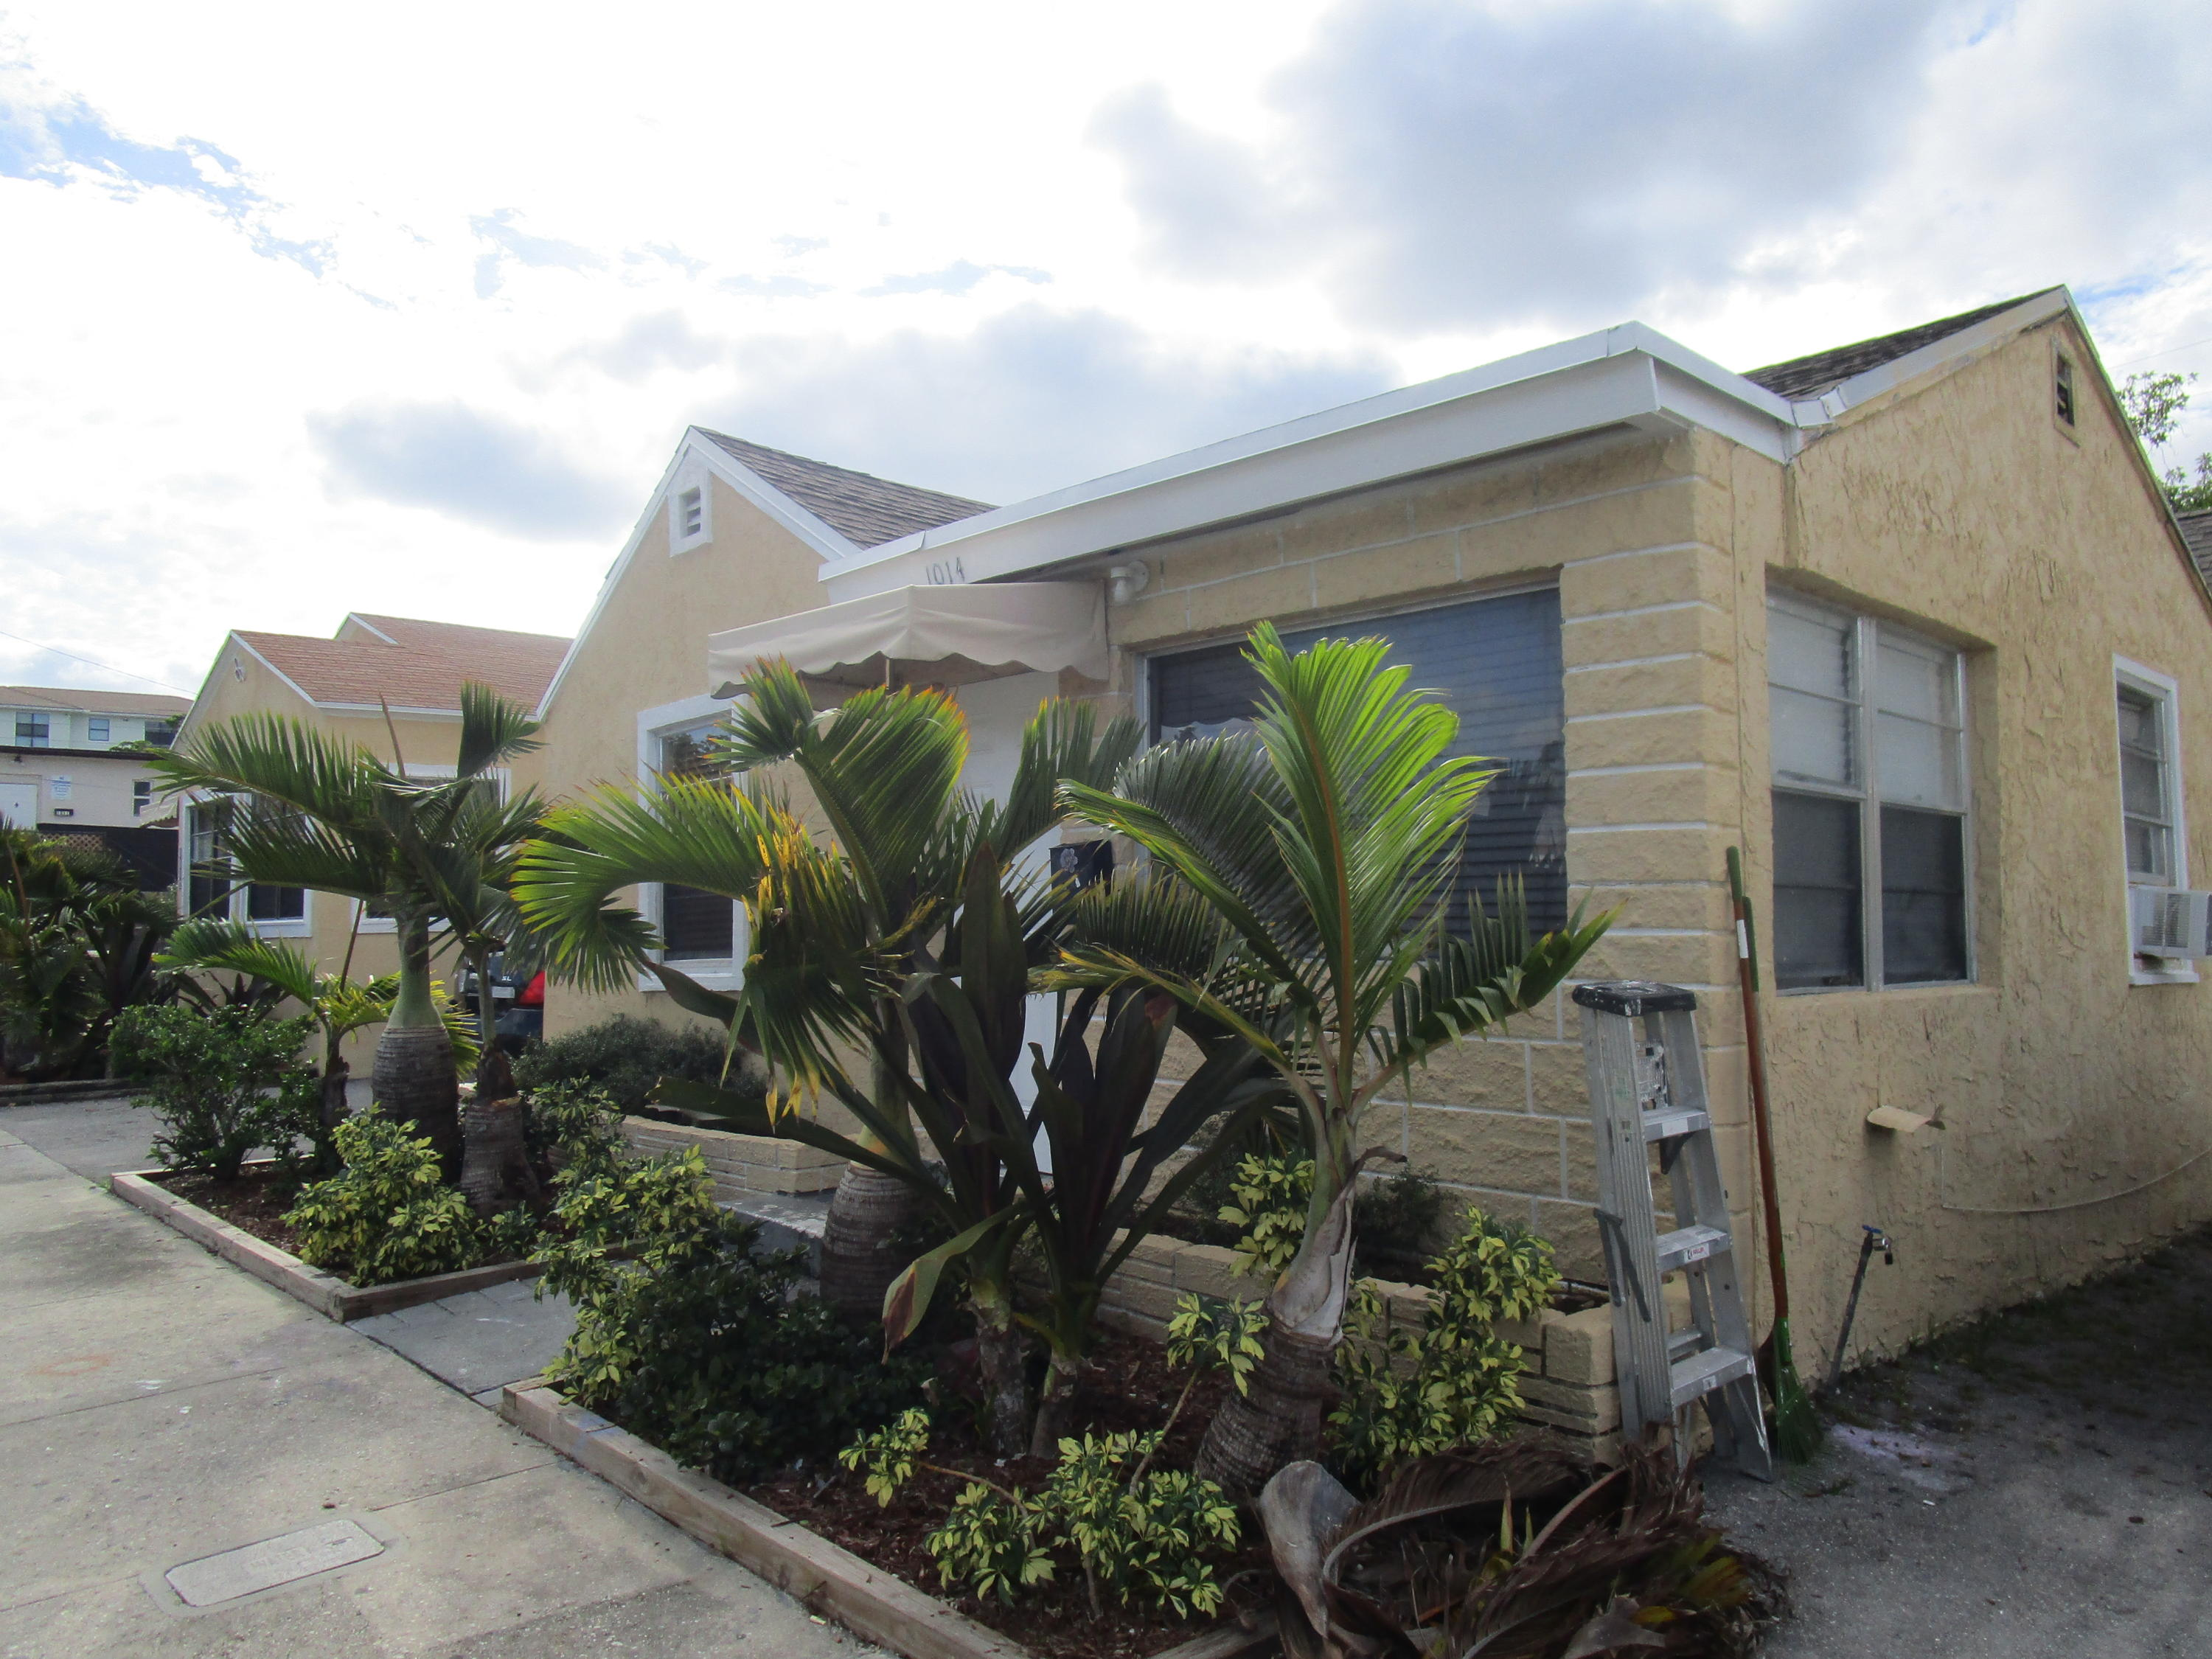 1014 18th Street  West Palm Beach, FL 33407